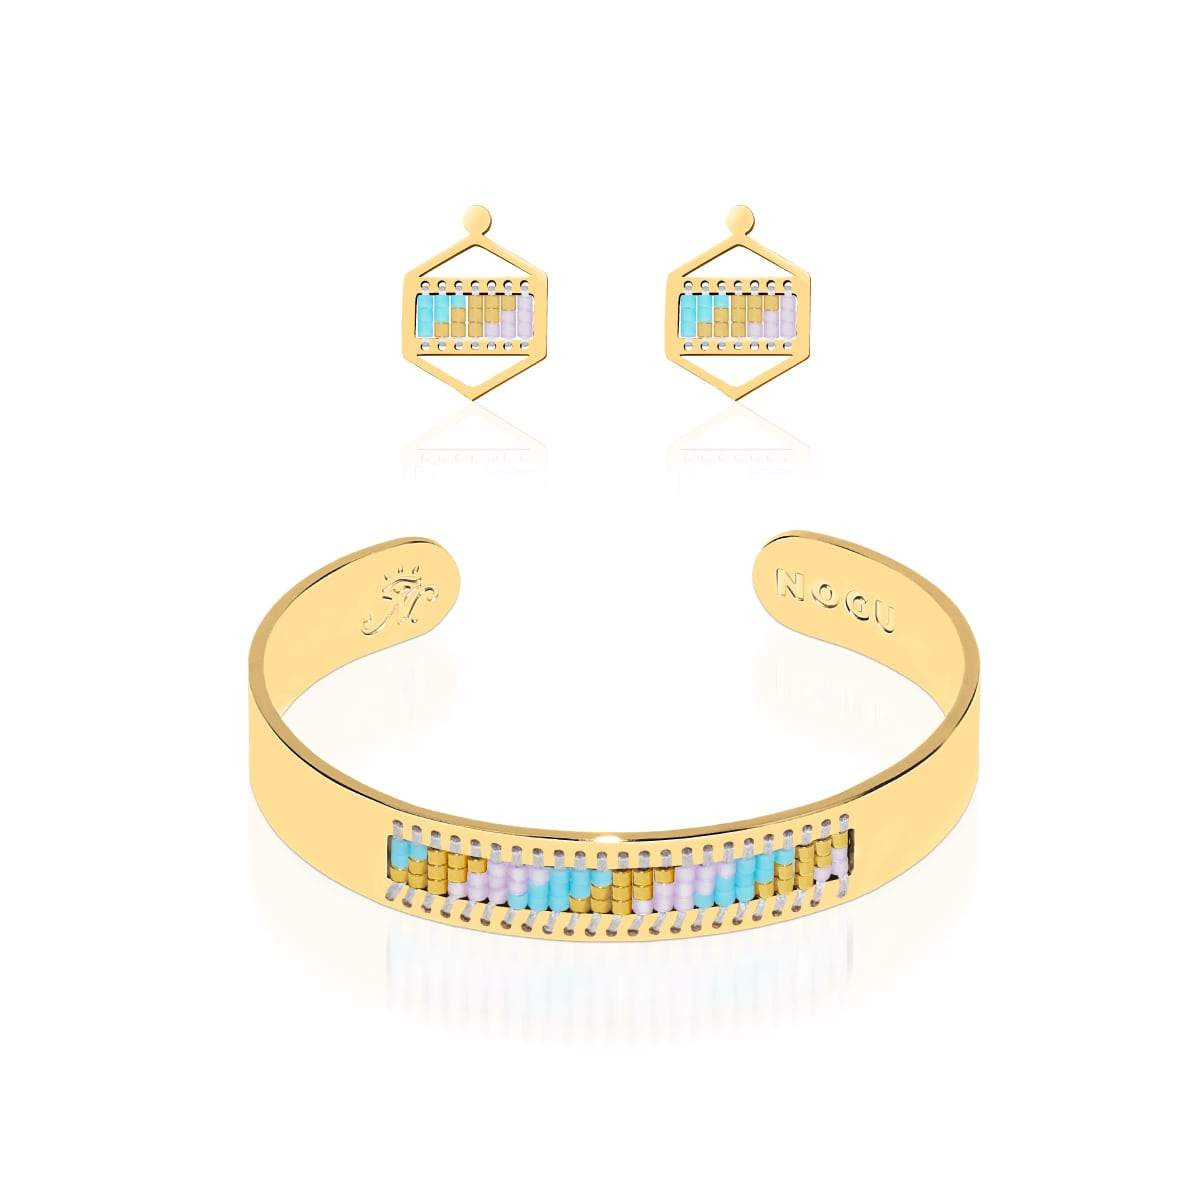 Laguna Niguel | Or 18 carats | Ensemble de boucles d'oreilles Boho Bangle